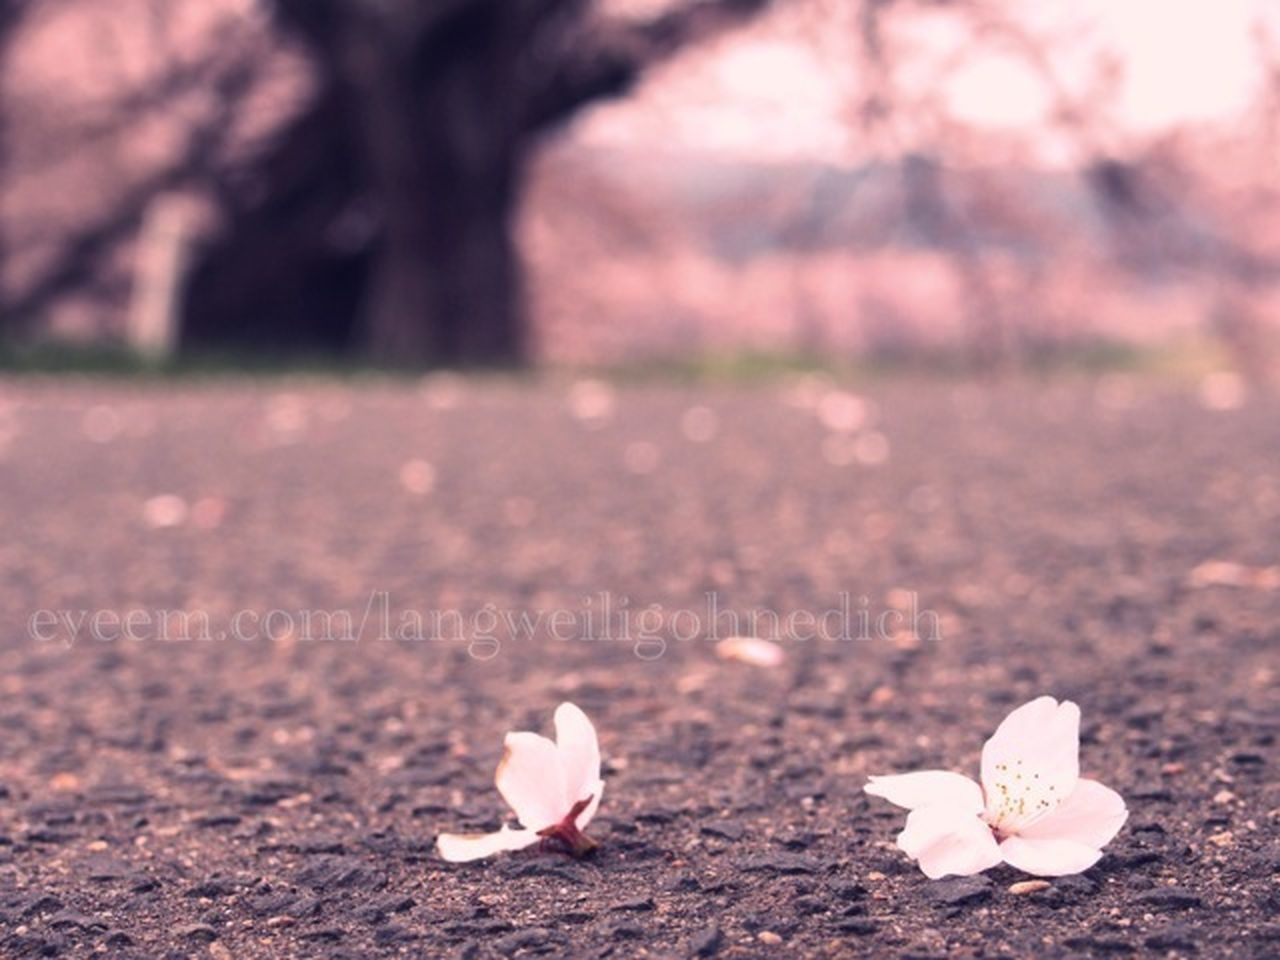 nature, outdoors, day, tree, no people, petal, close-up, plant, flower, fragility, flower head, freshness, beauty in nature, crocus